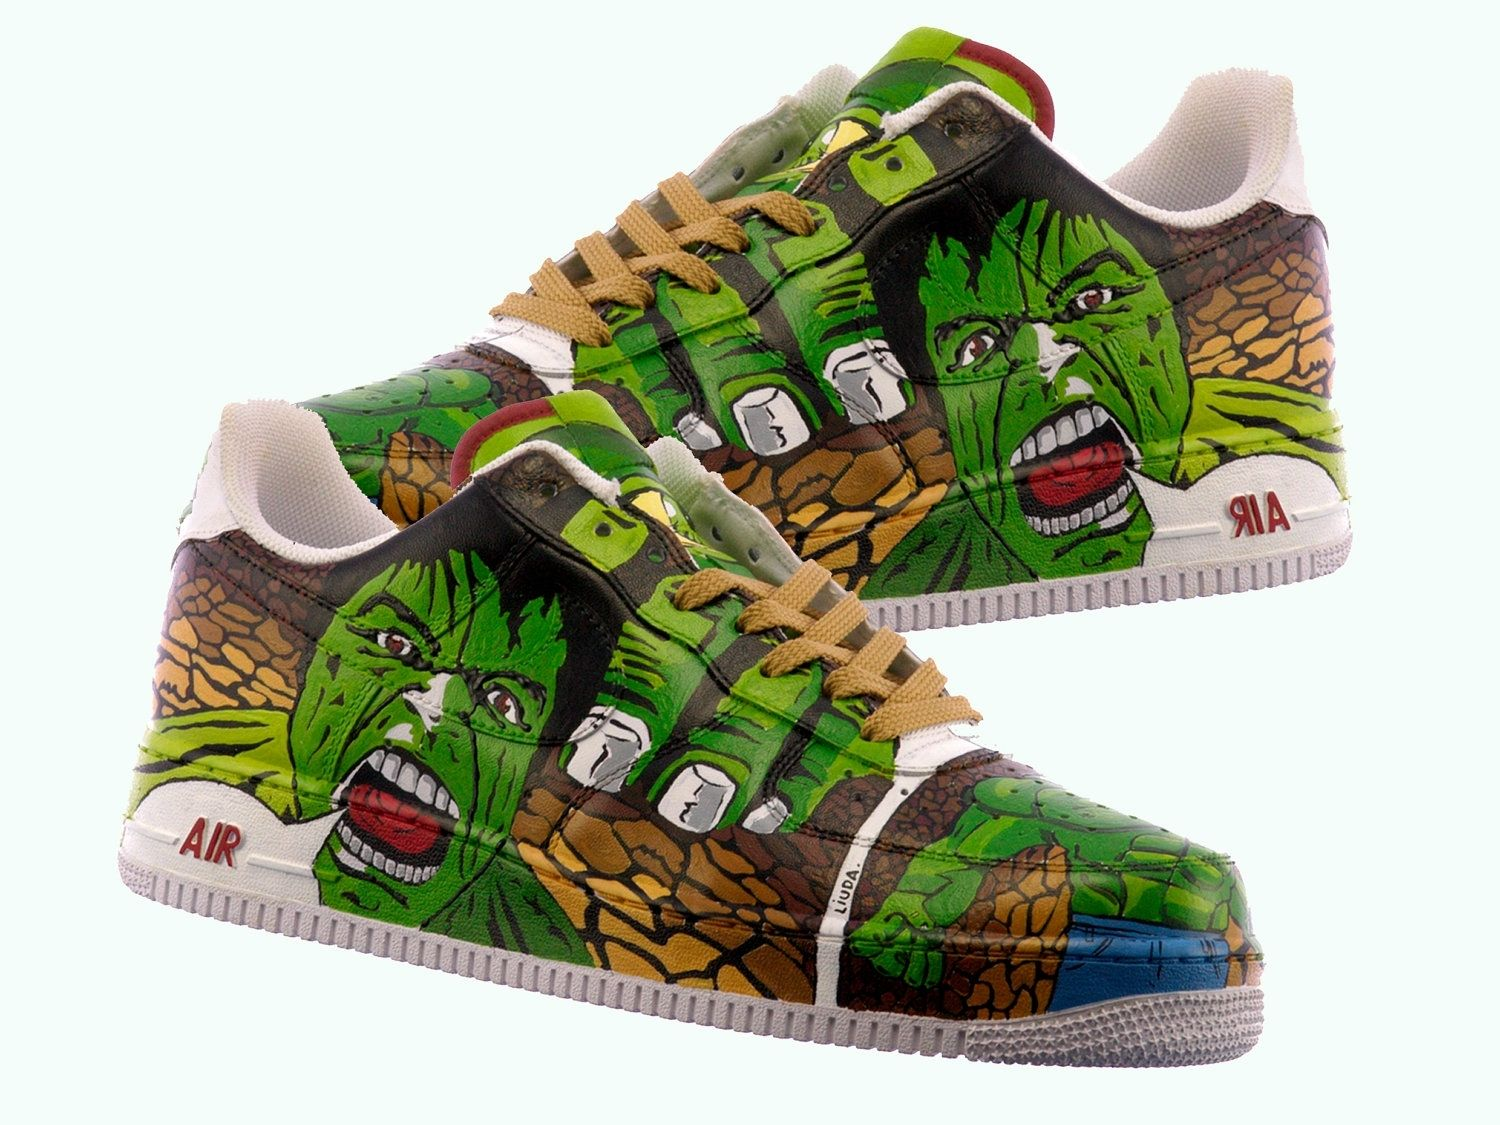 Best Custom Shoes In The World